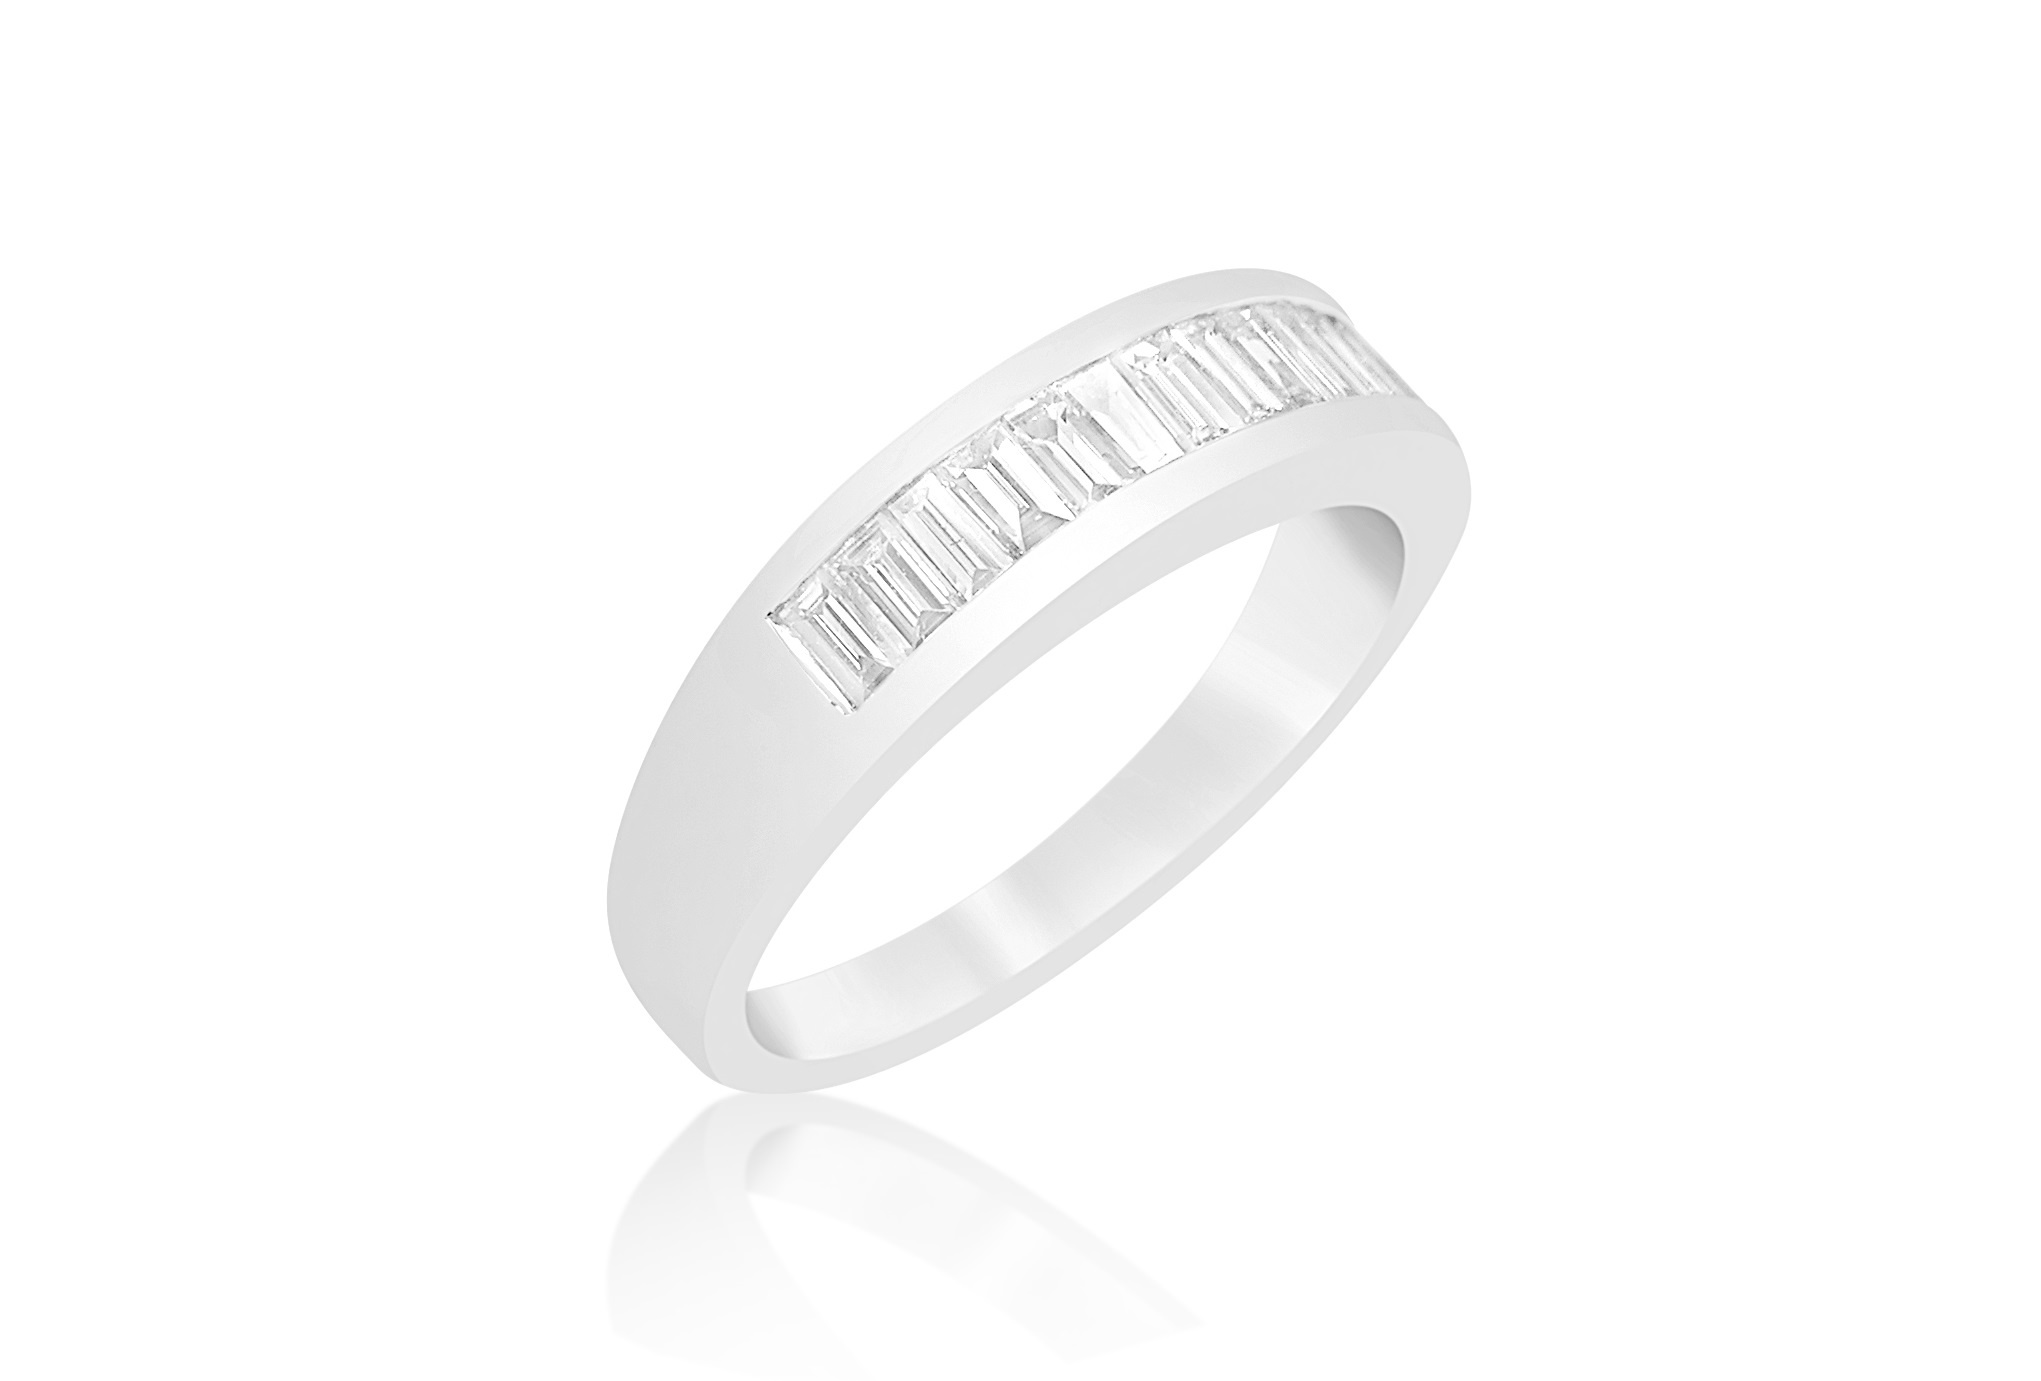 18kt white gold ring with 0.56 CT diamonds